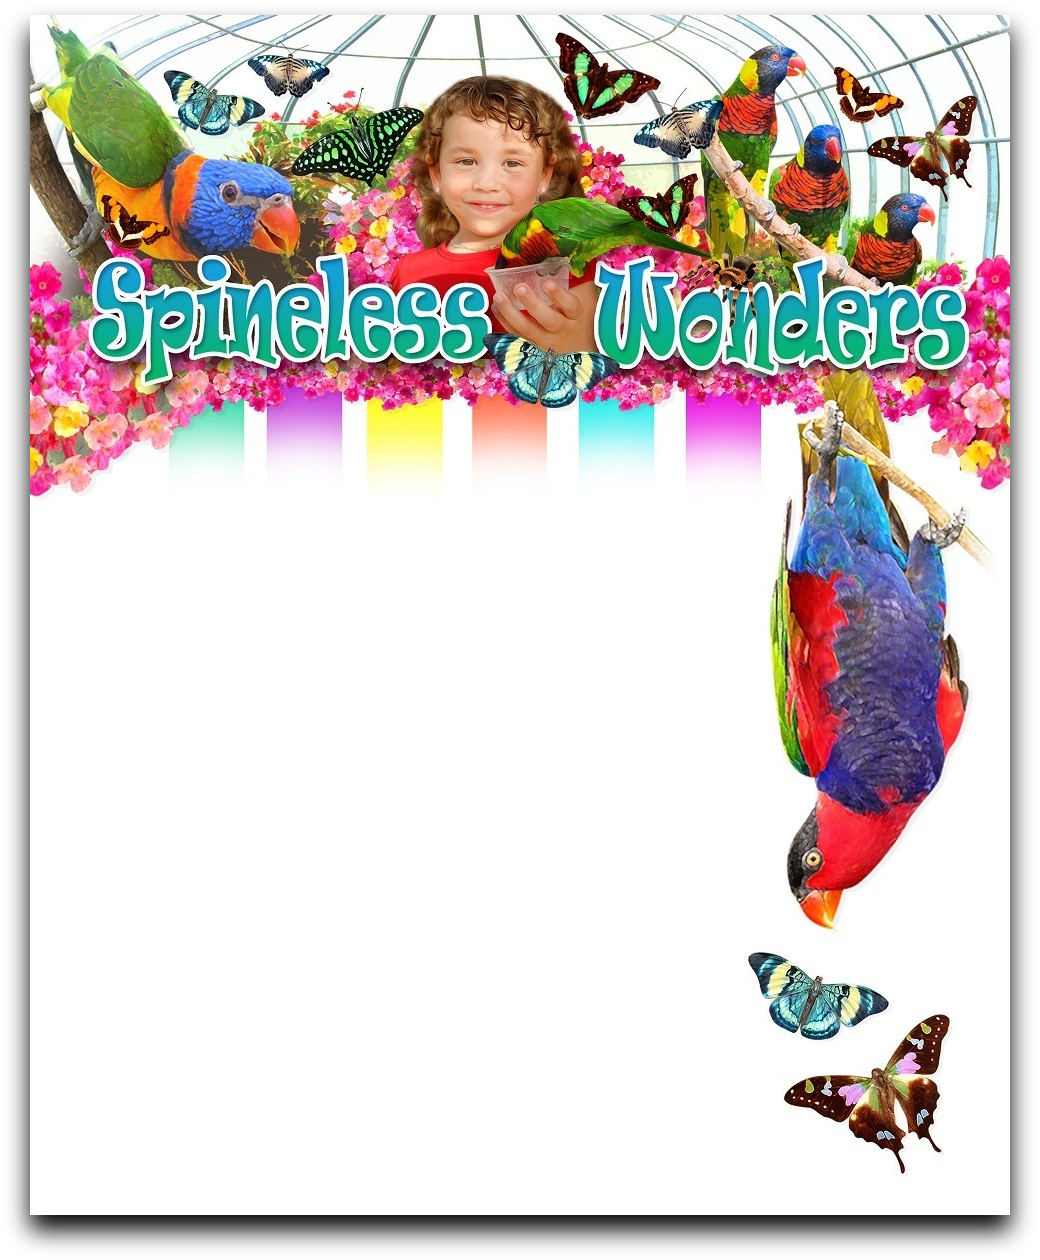 Spineless Wonders